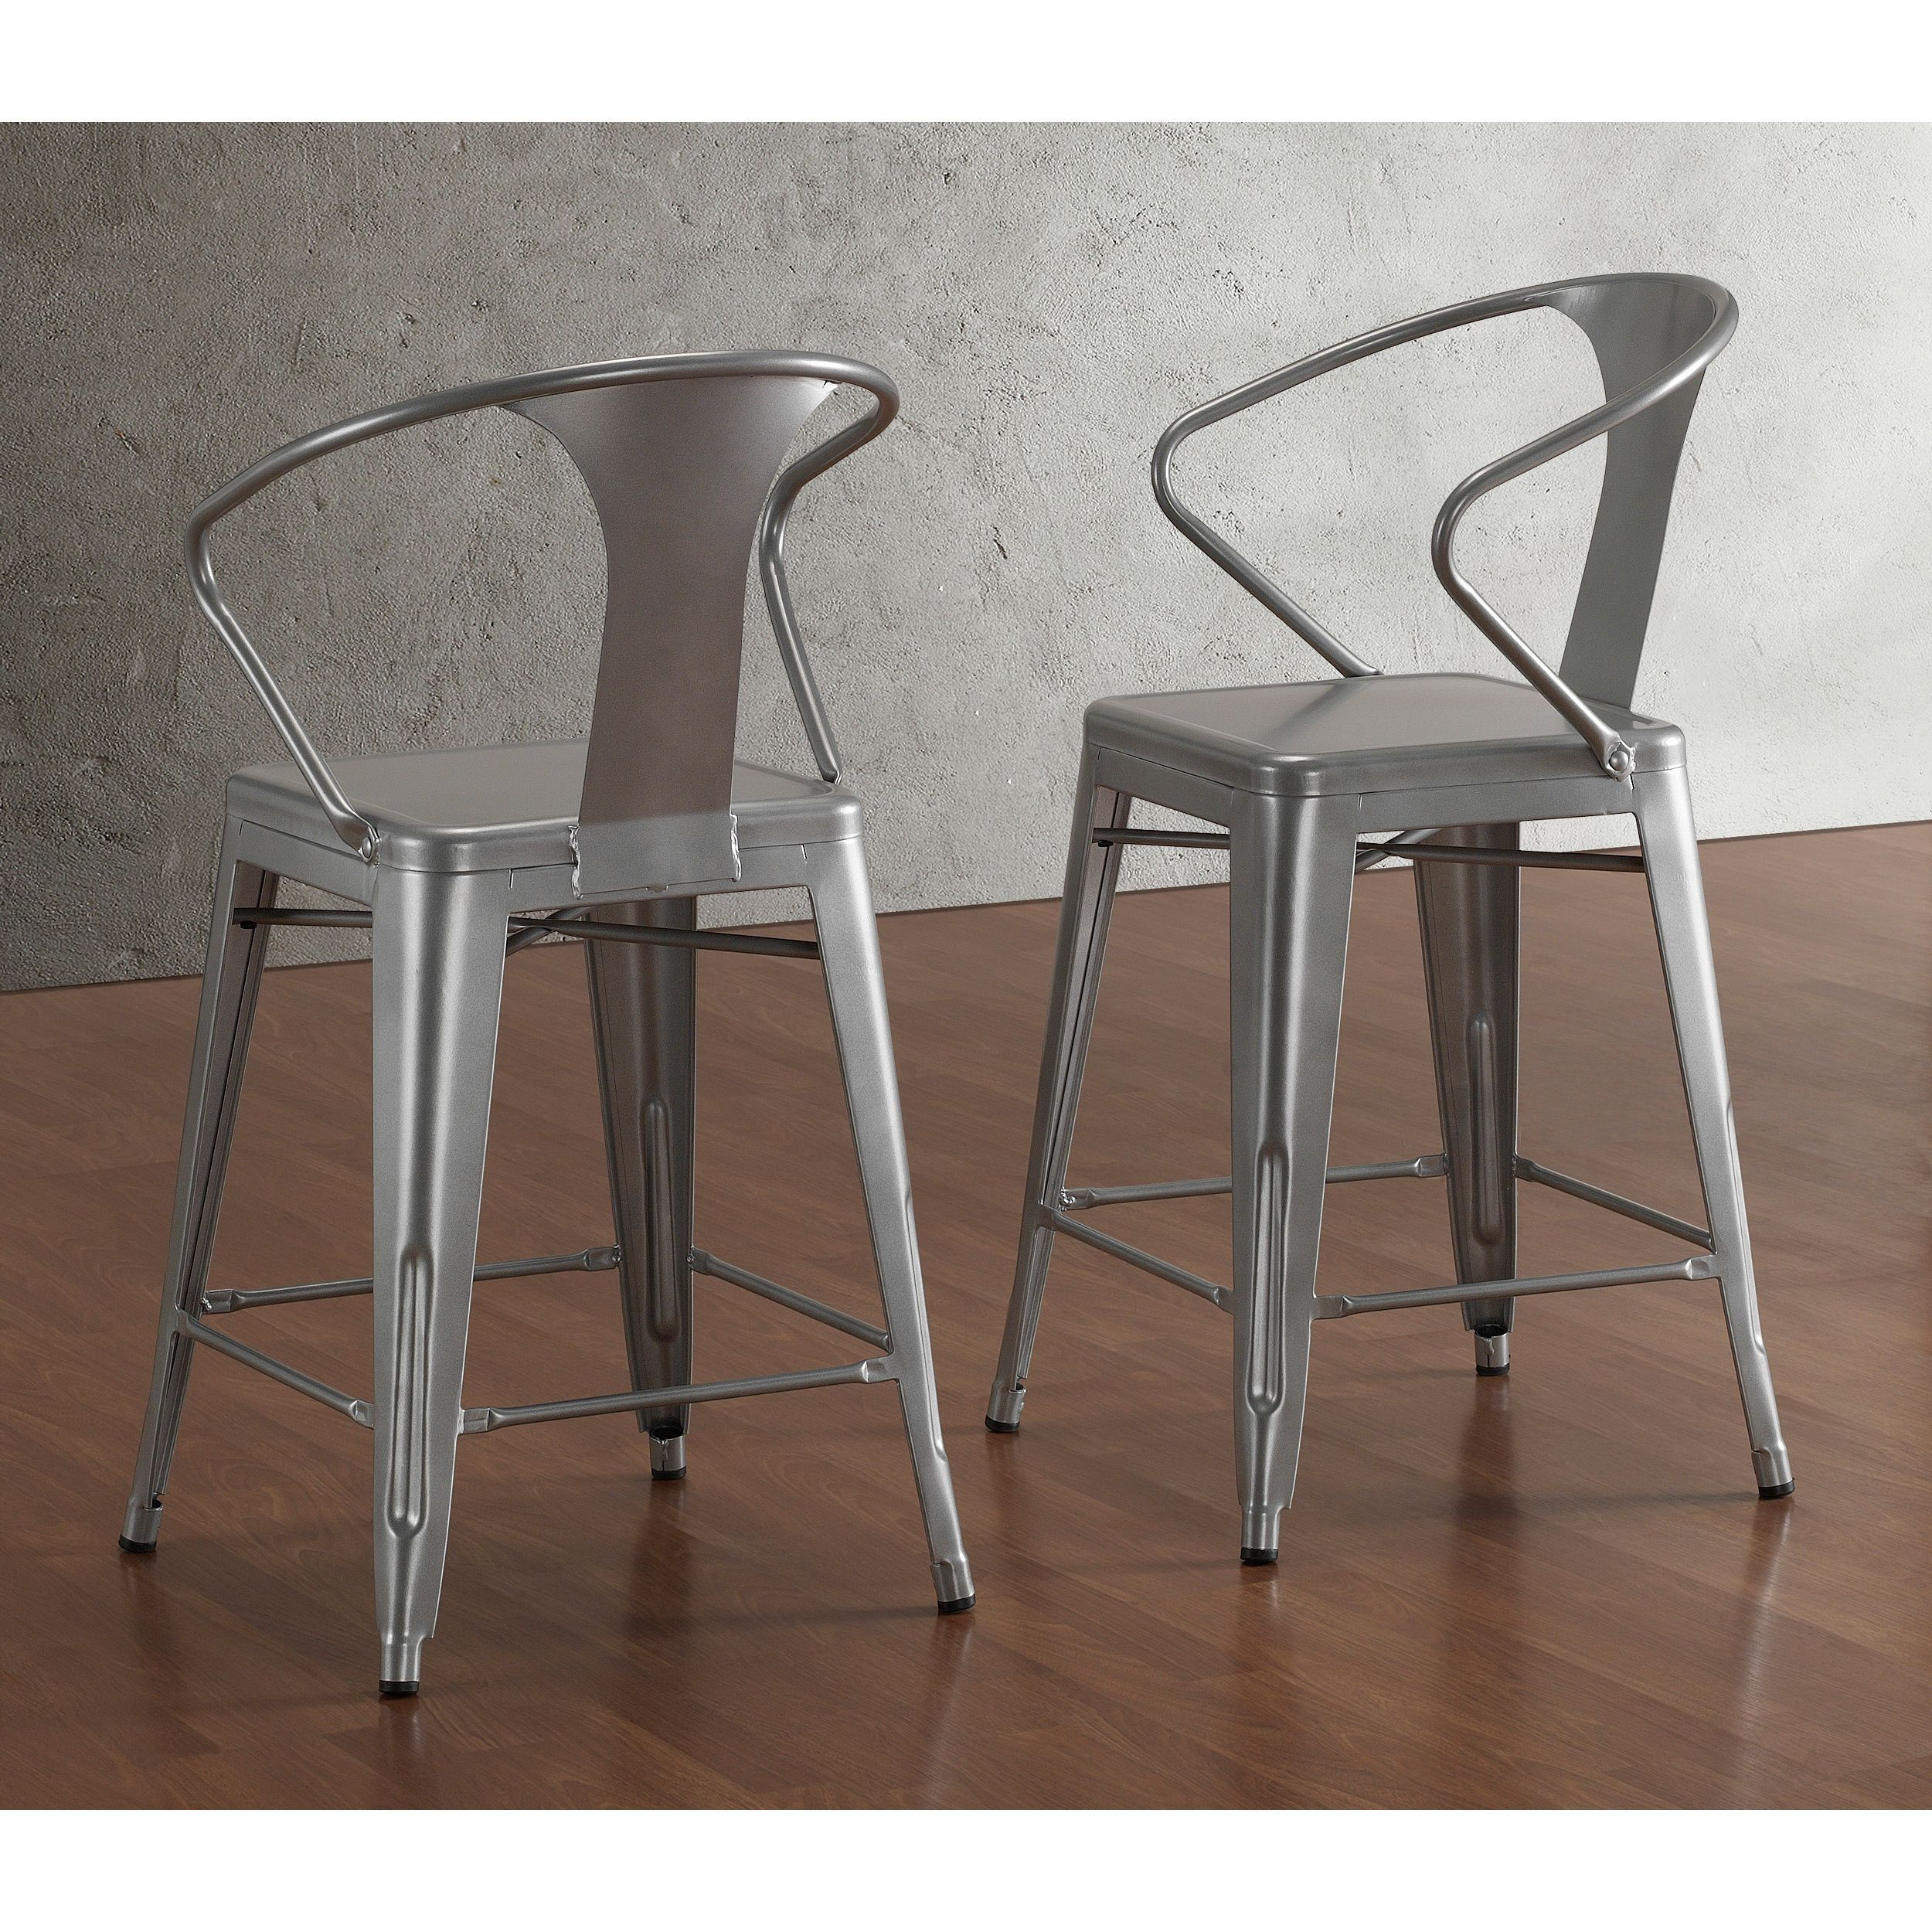 Tabouret Silver With Back 24 Inch Counter Stools (Set Of 2) By I Love Living